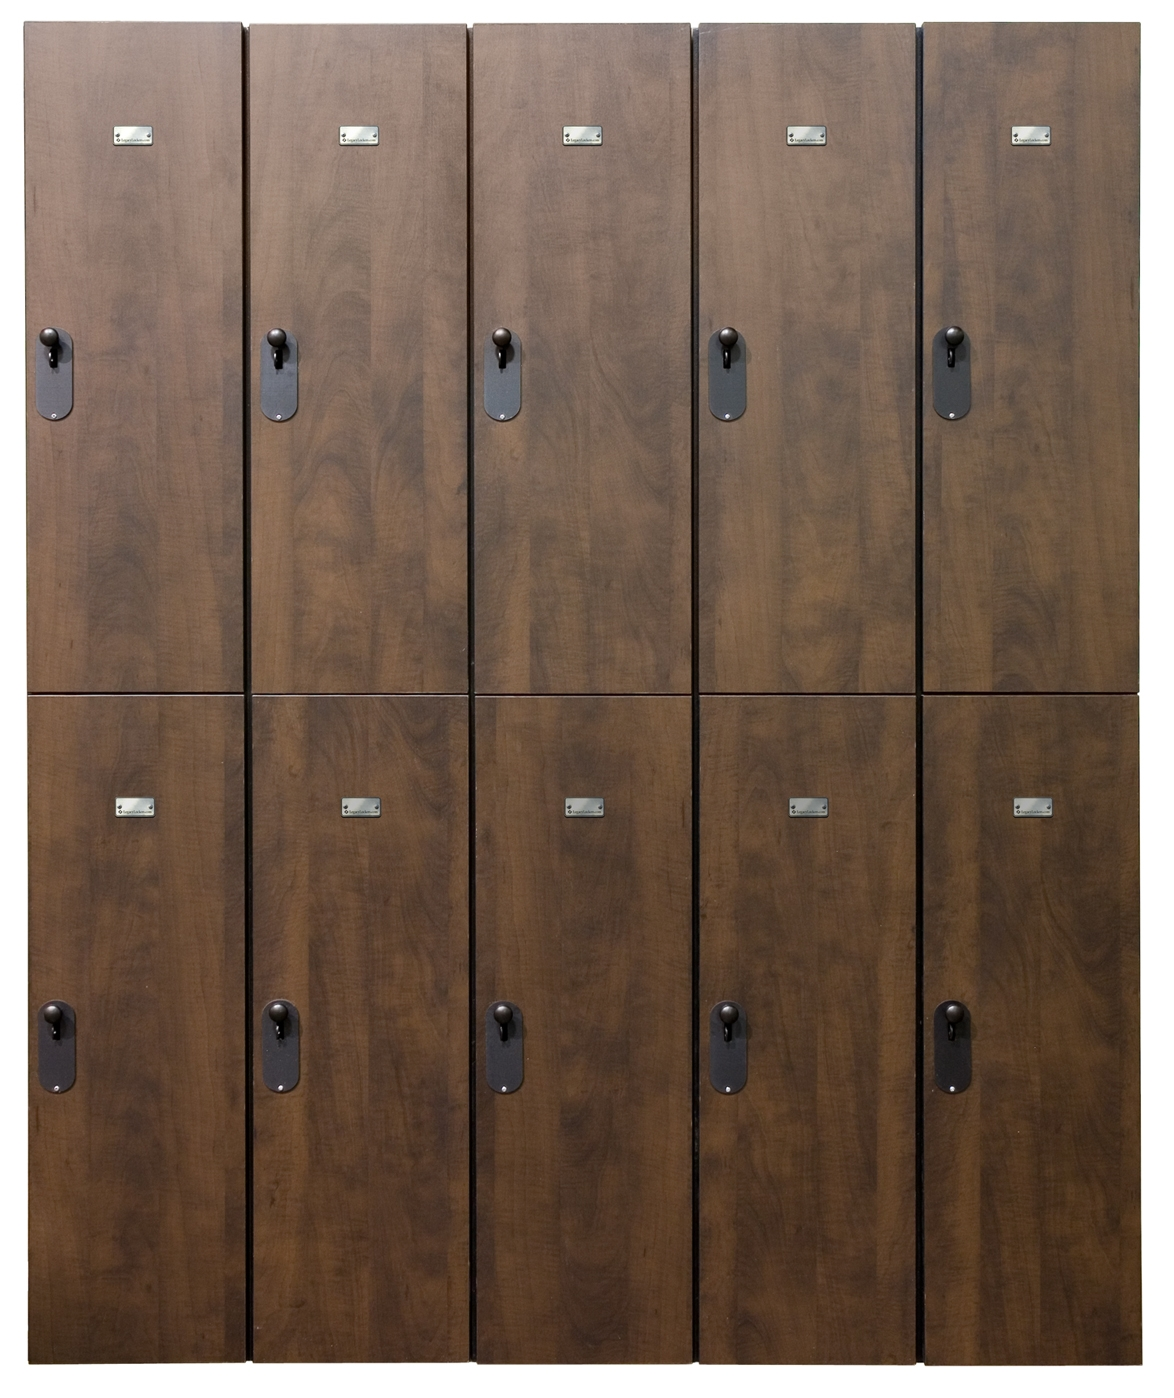 New Plastic Laminate Wood Lockers image 2 image 2